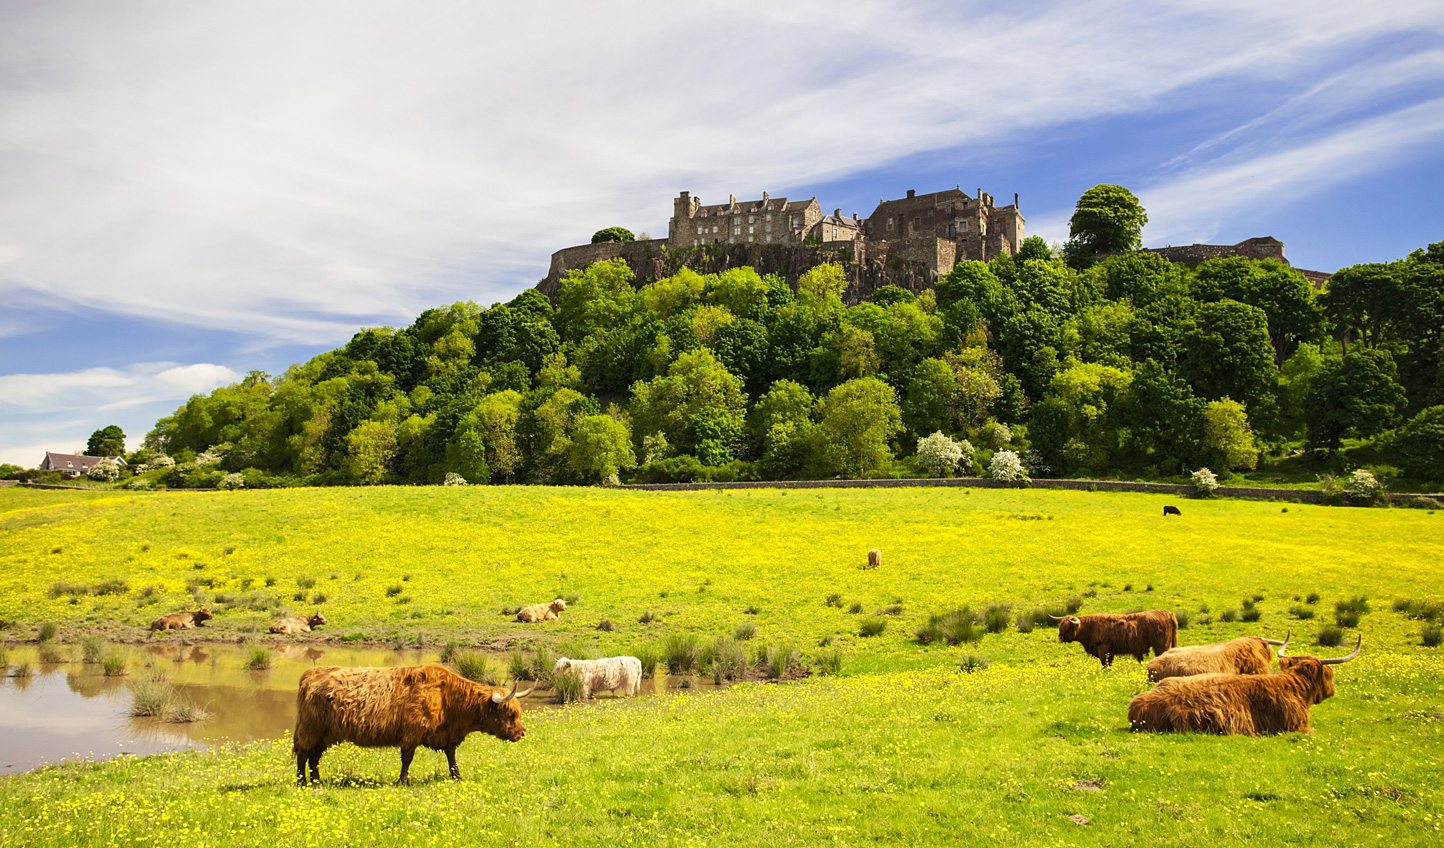 Explore Stirling Castle, standing proud over battlefields and countryside